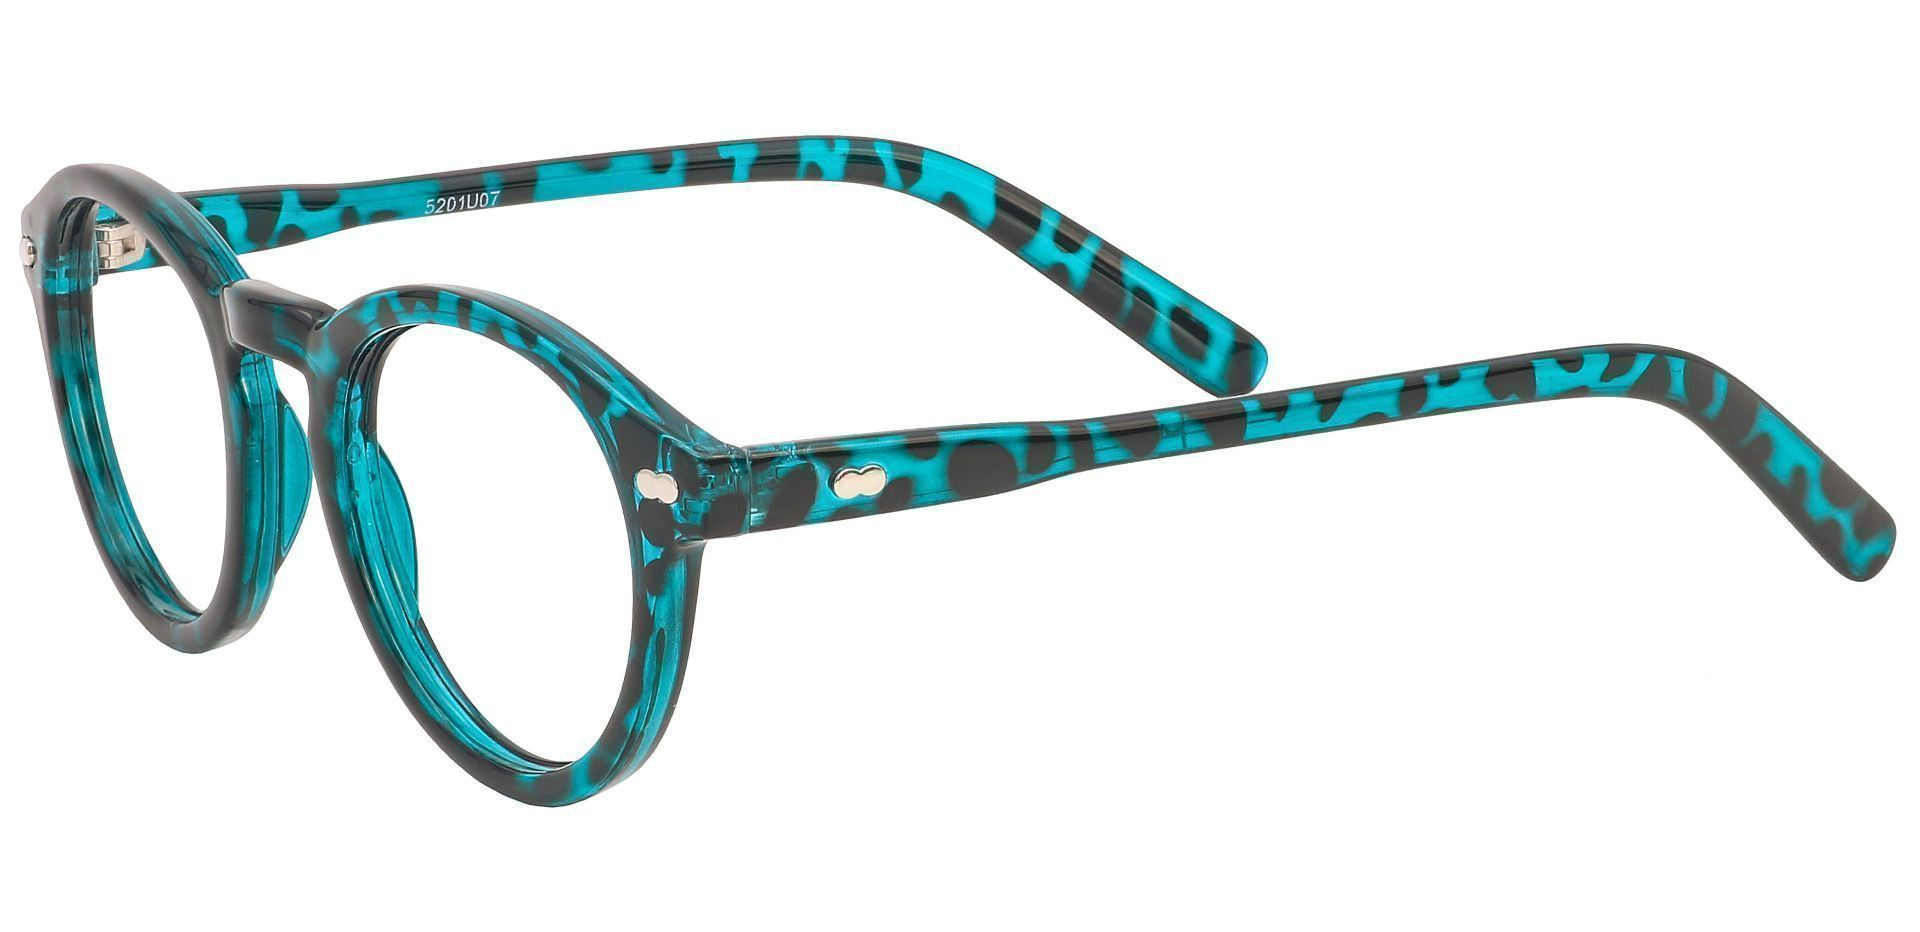 Vee Round Blue Light Blocking Glasses - Blue